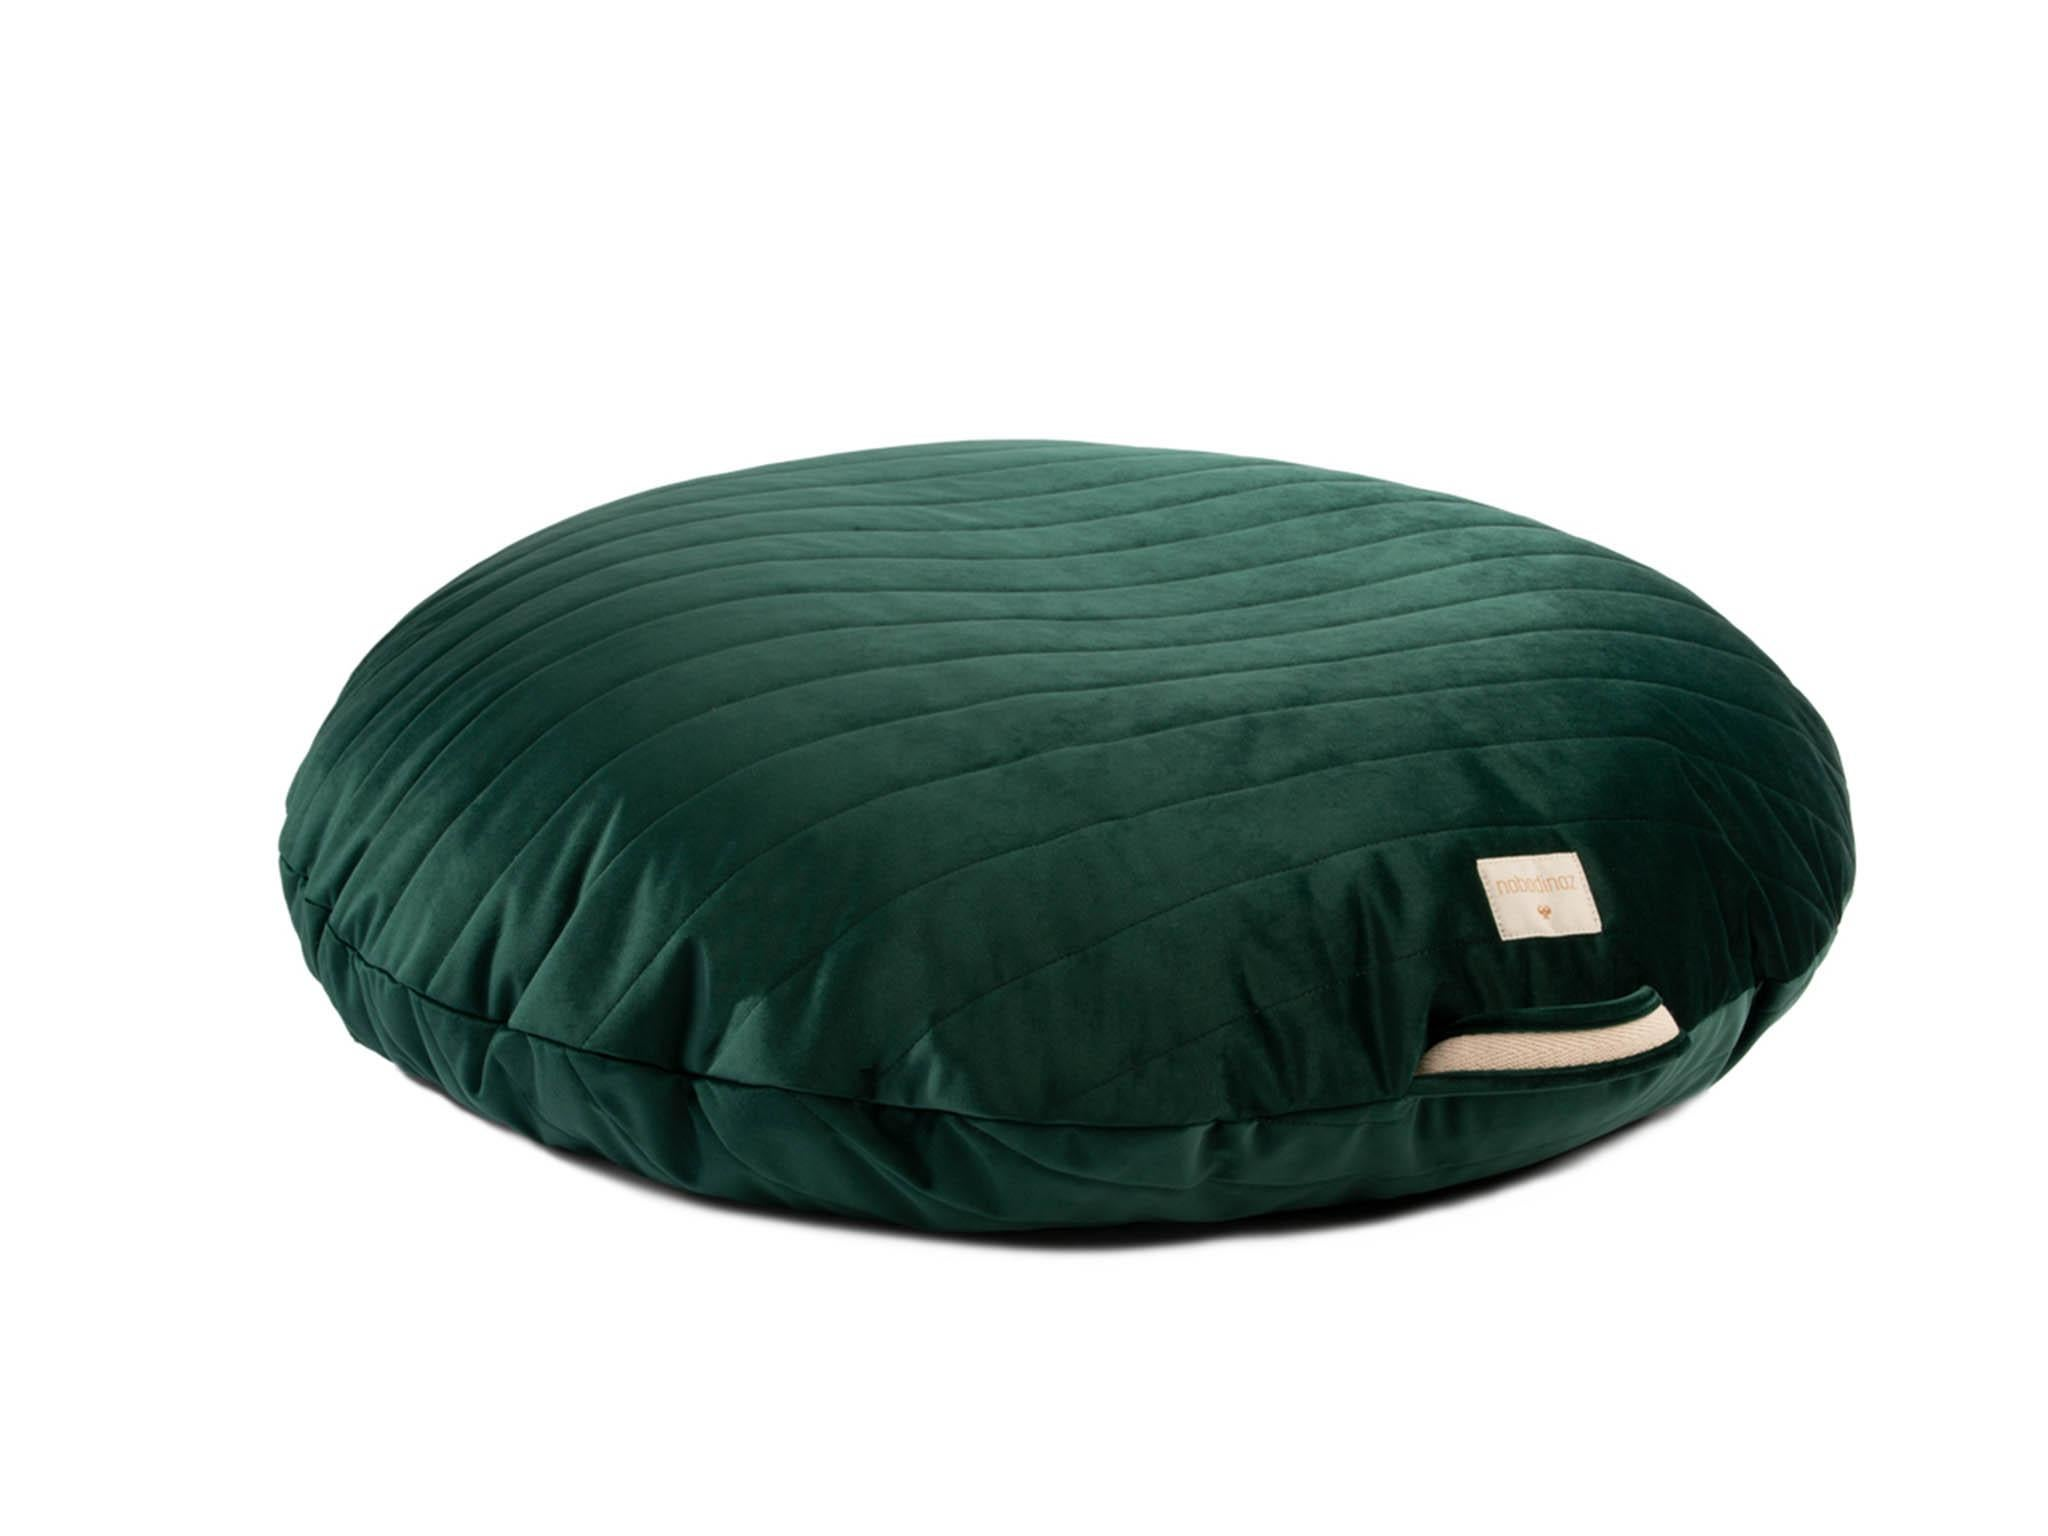 Best Beanbags That Are Comfy And Useful